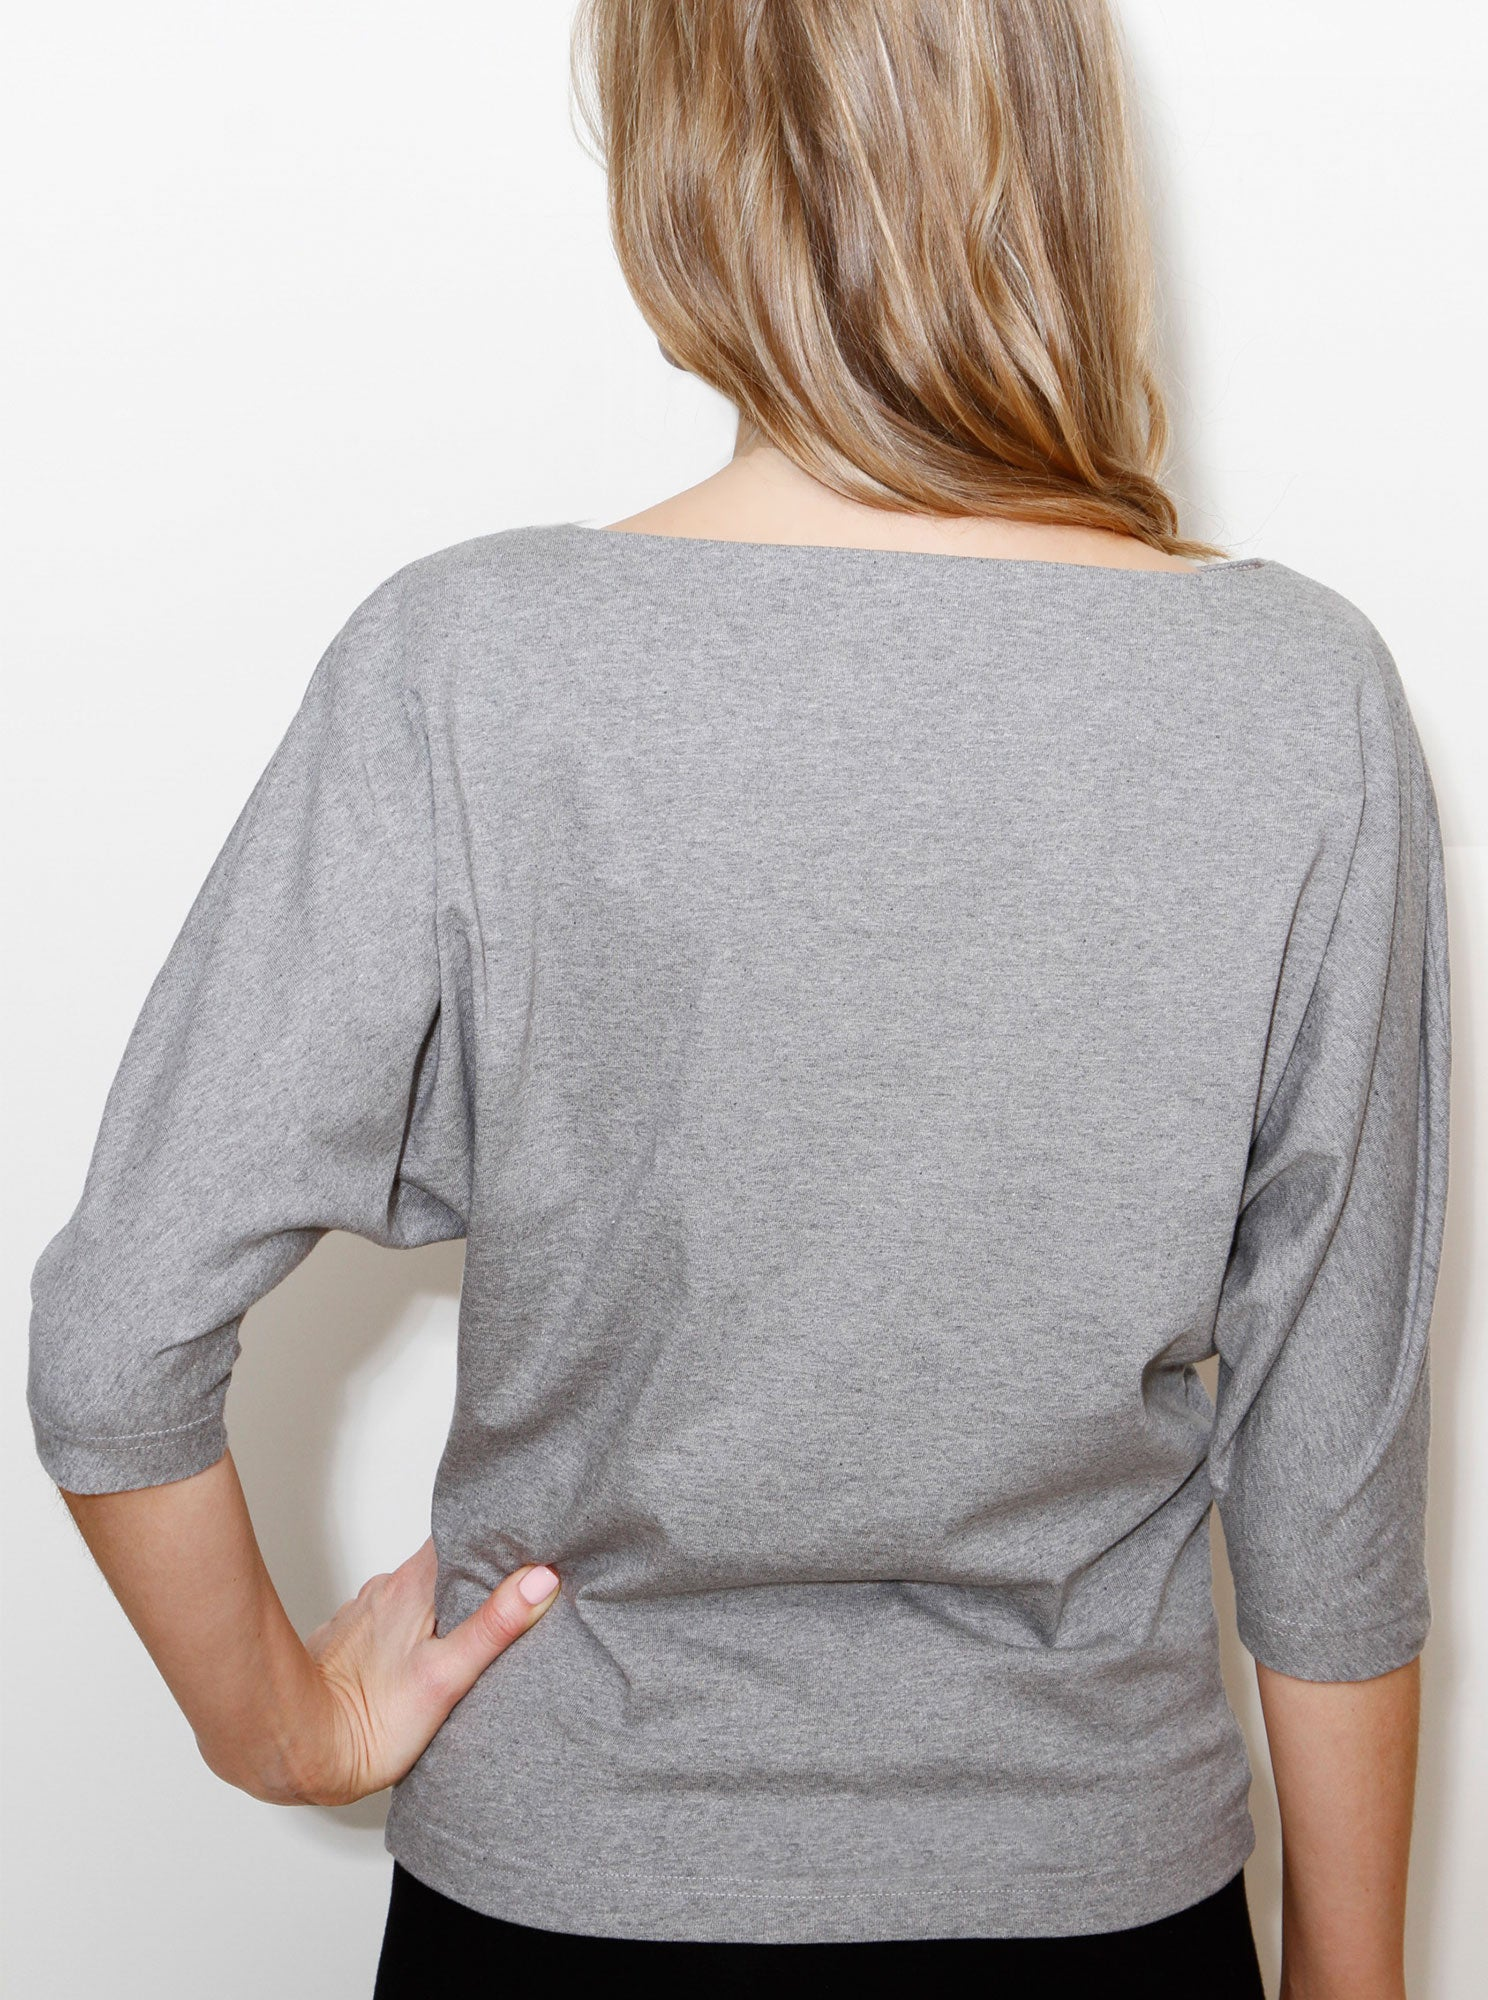 TAEVI Grey Marl Organic Cotton Blouse